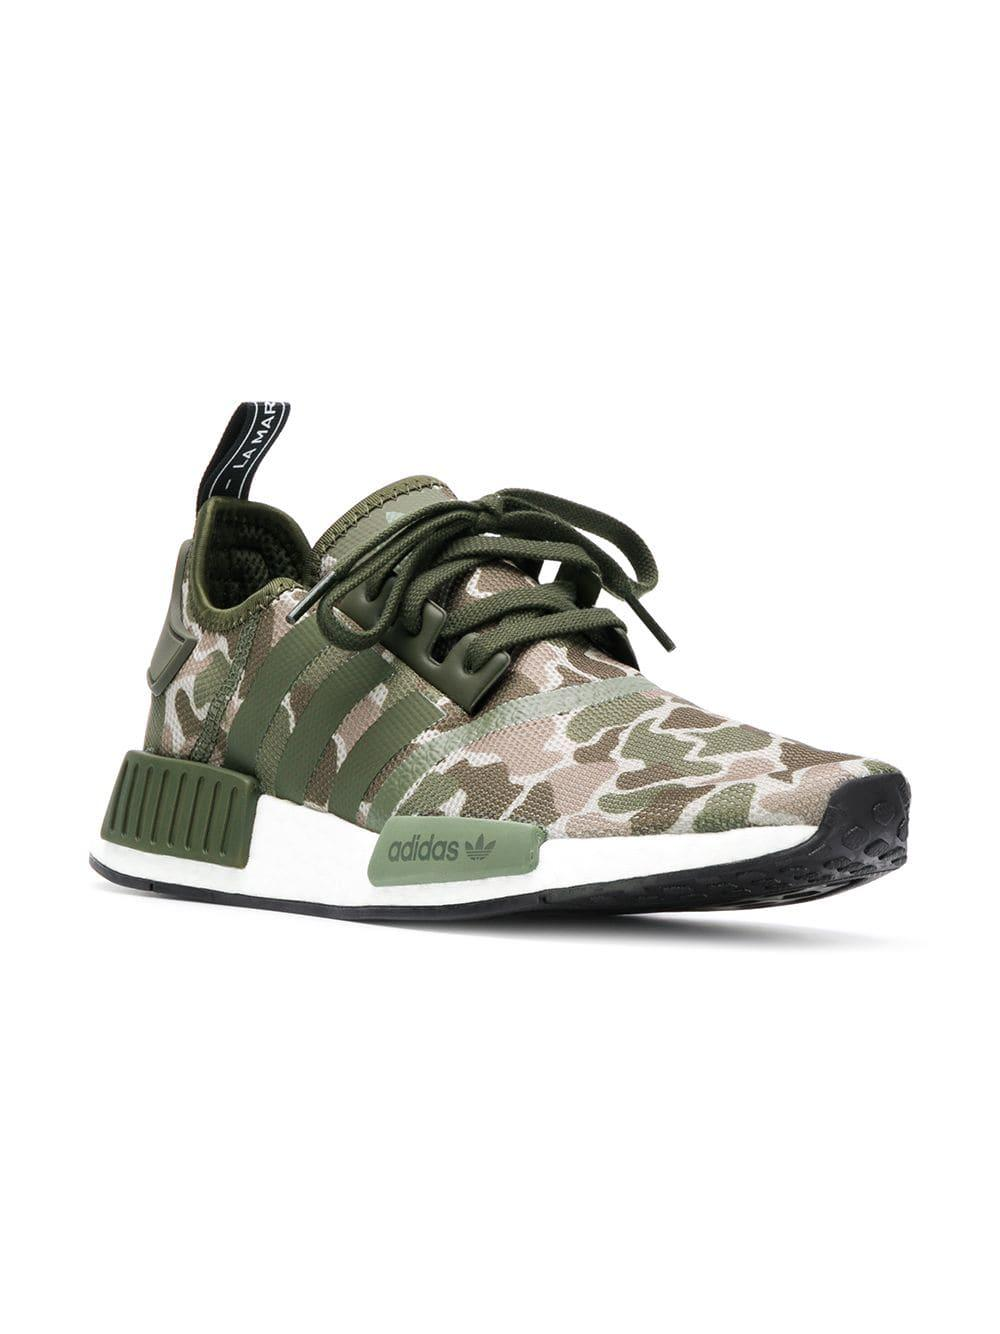 Lyst - adidas Originals Nmd R1 Boost in Green for Men 571a50826